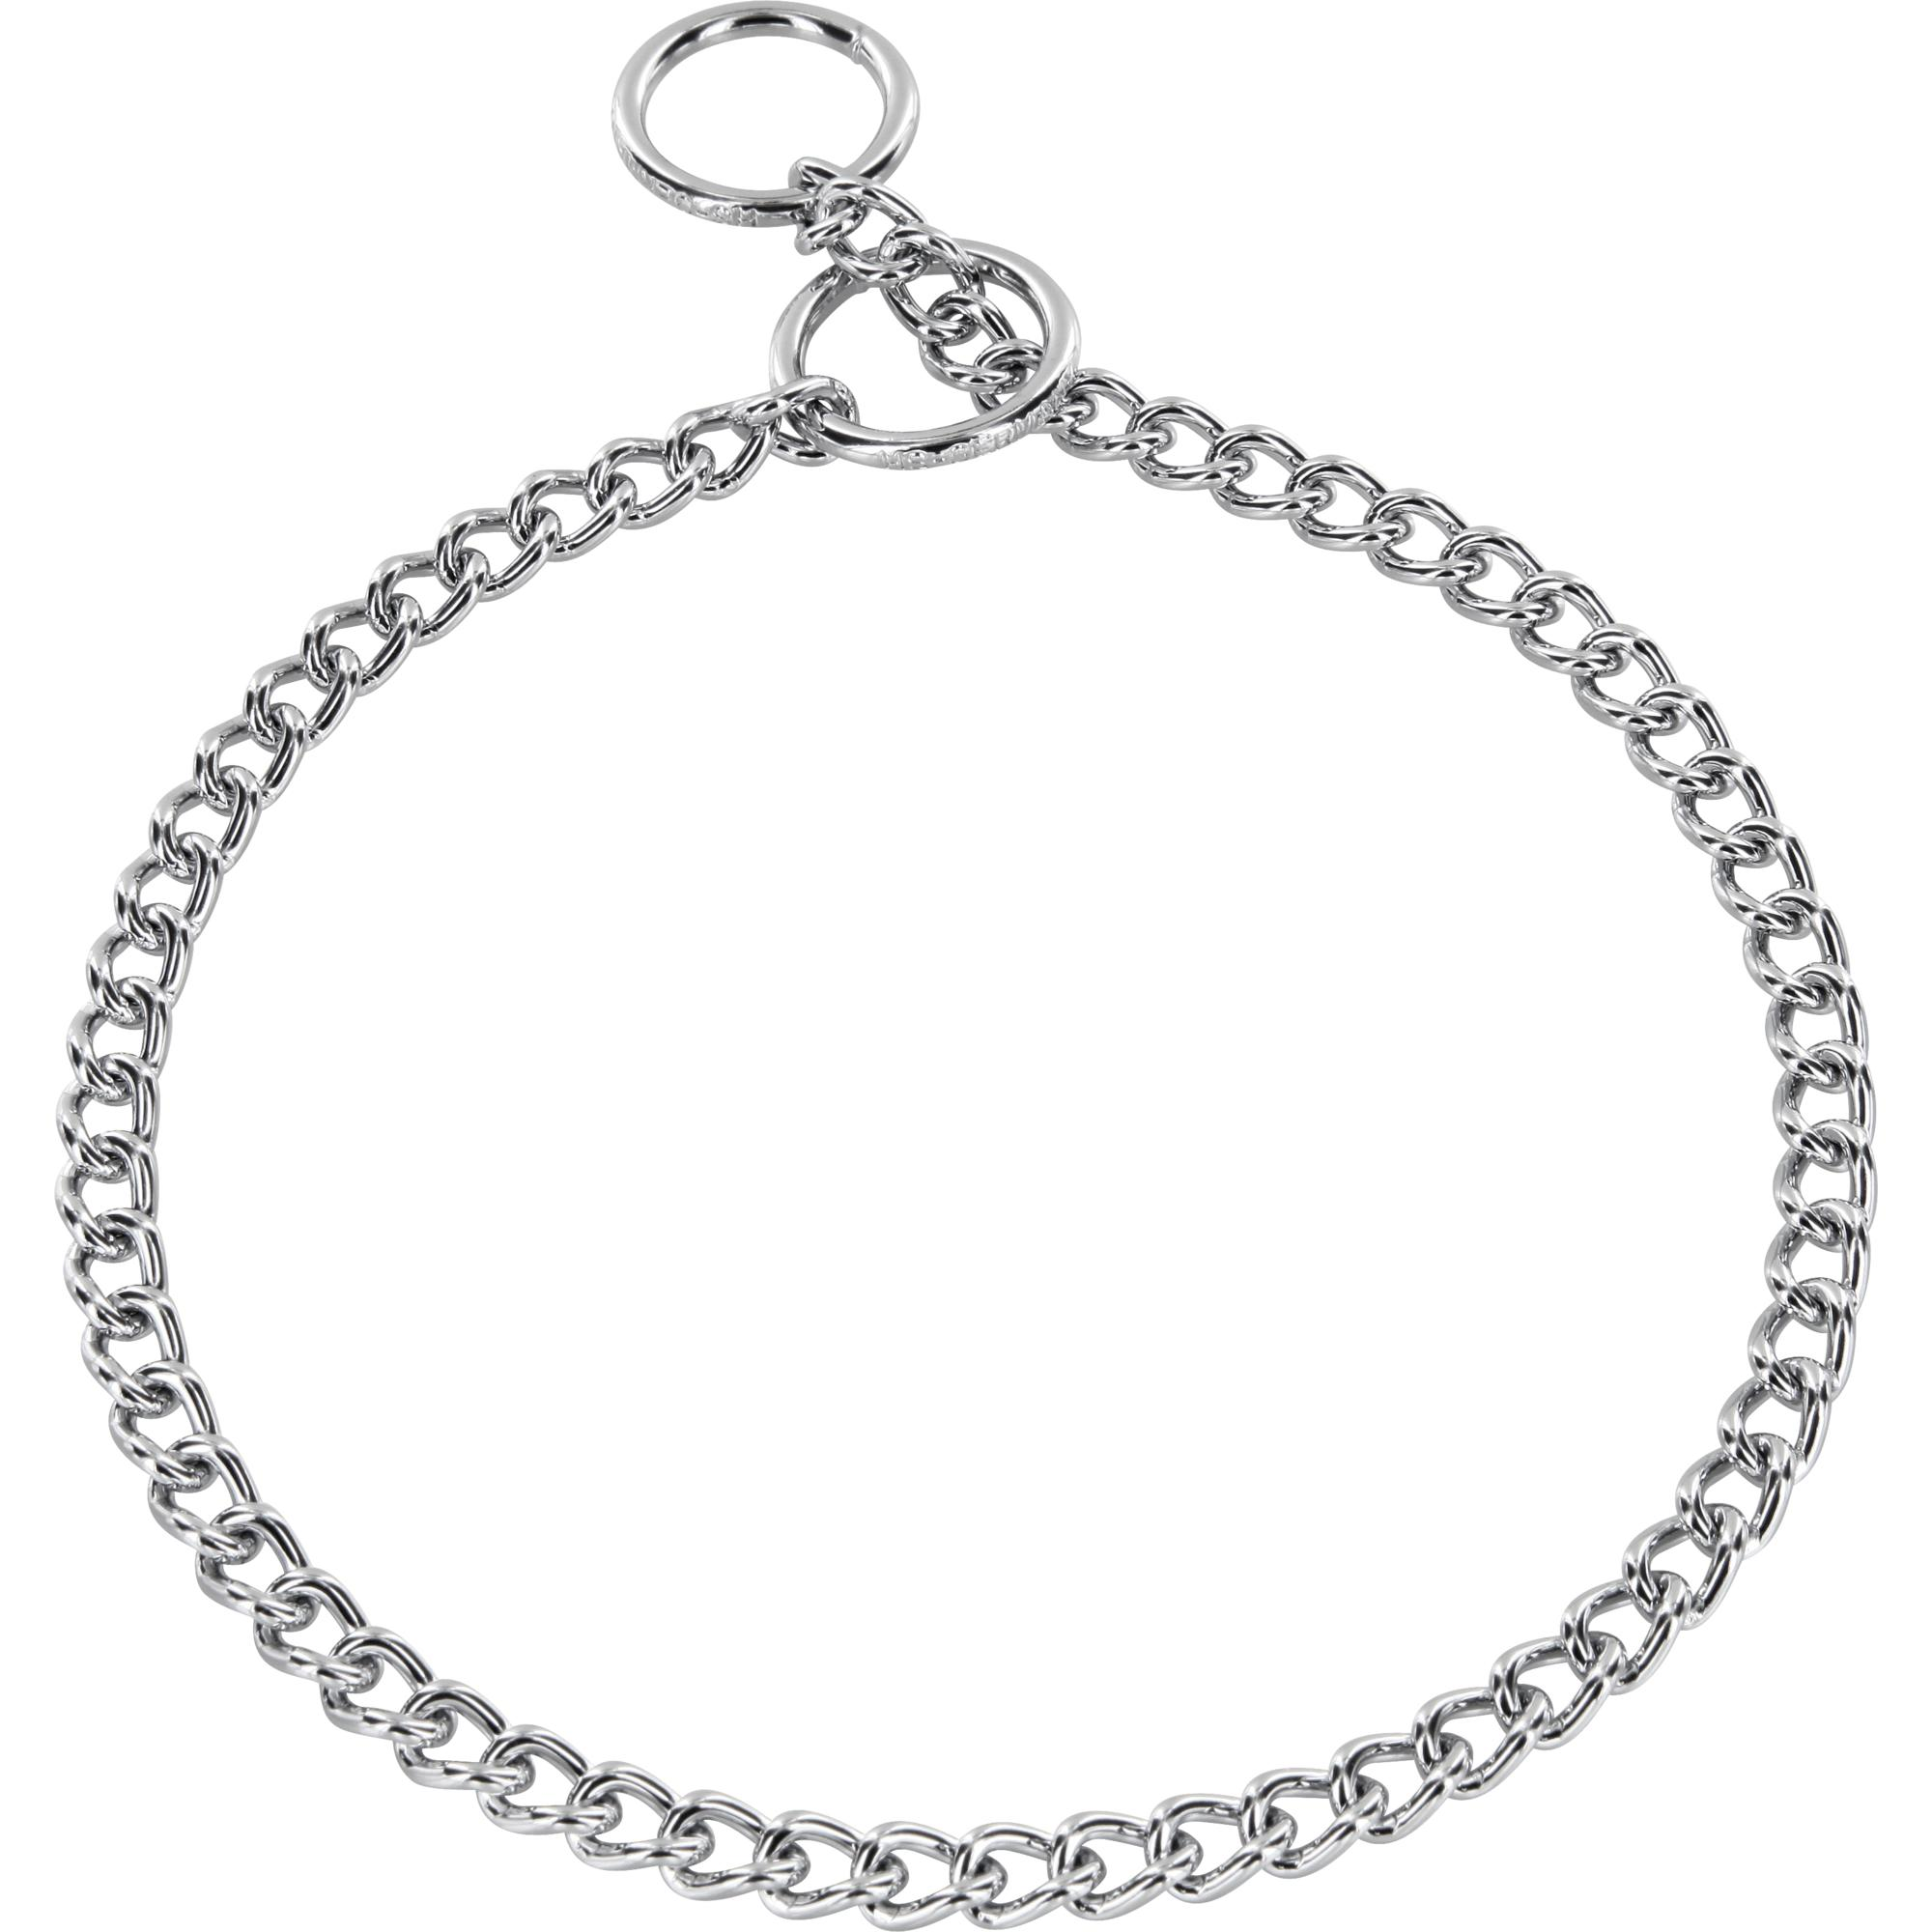 Collar Round Narrow Links Steel Chrome Plated 3 0 Mm